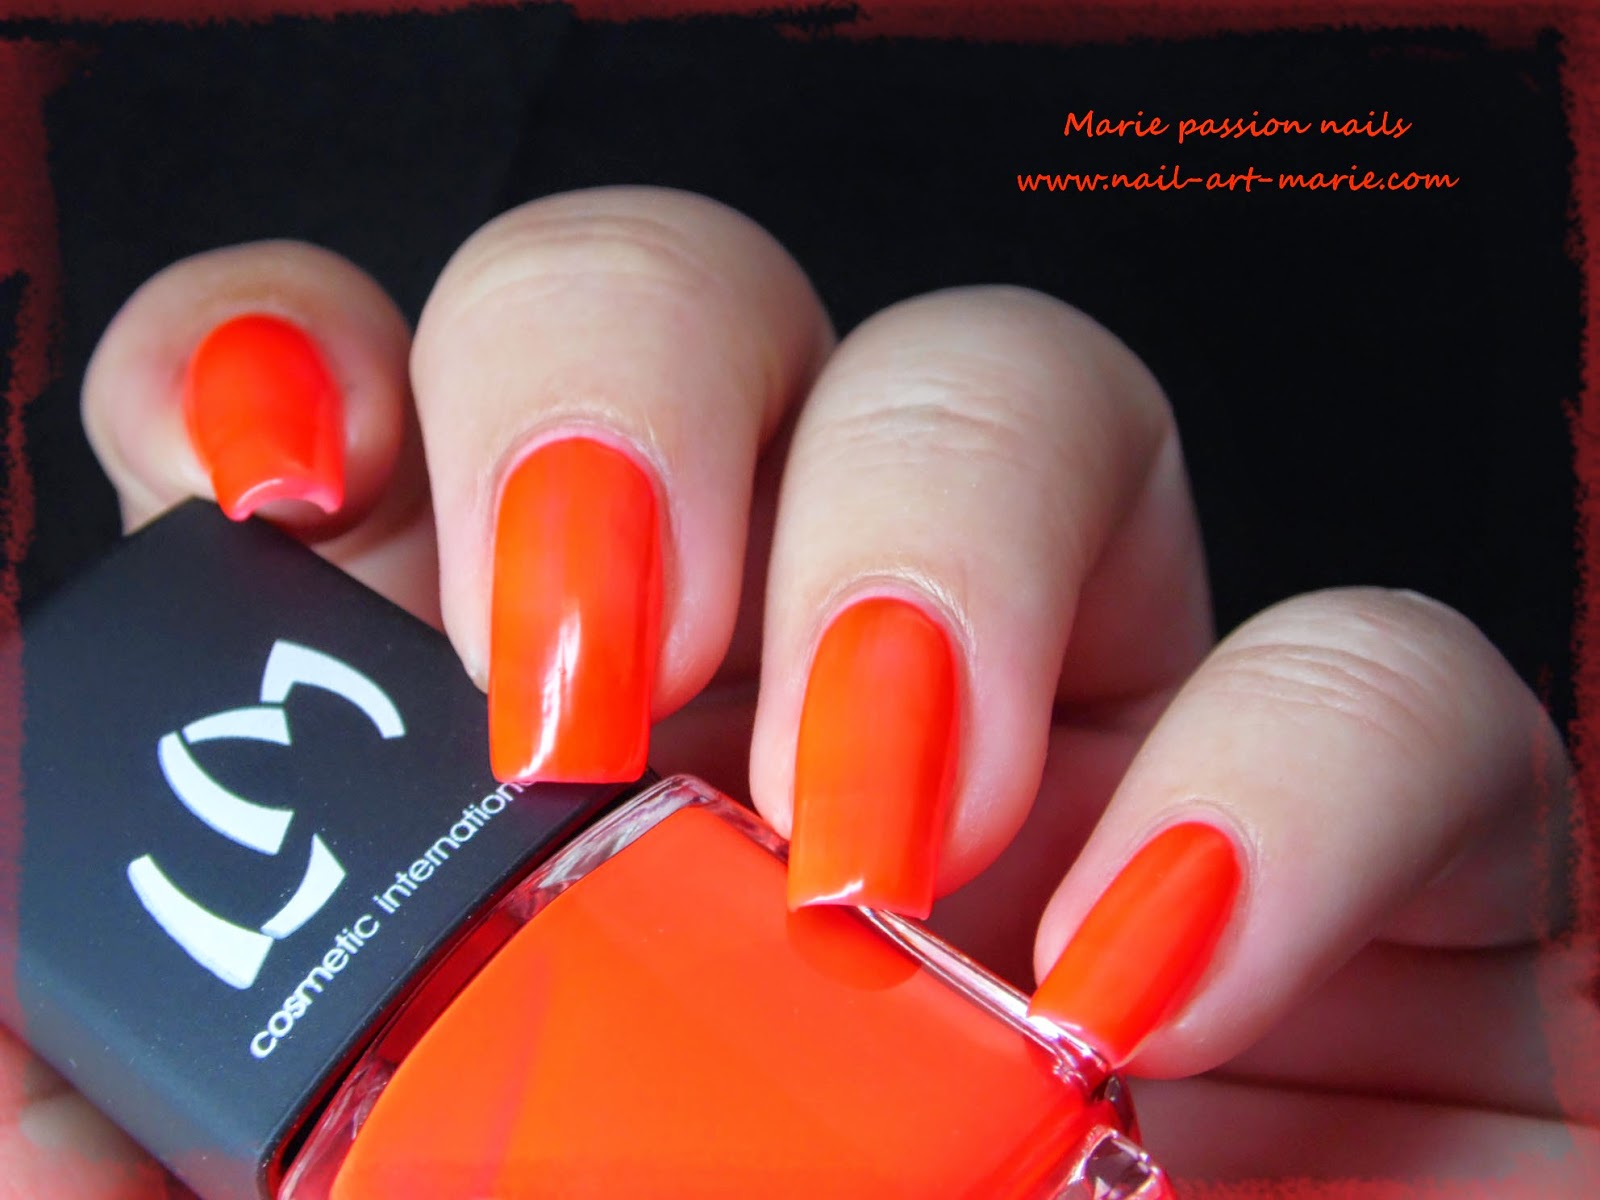 LM Cosmetic San Fransisco8